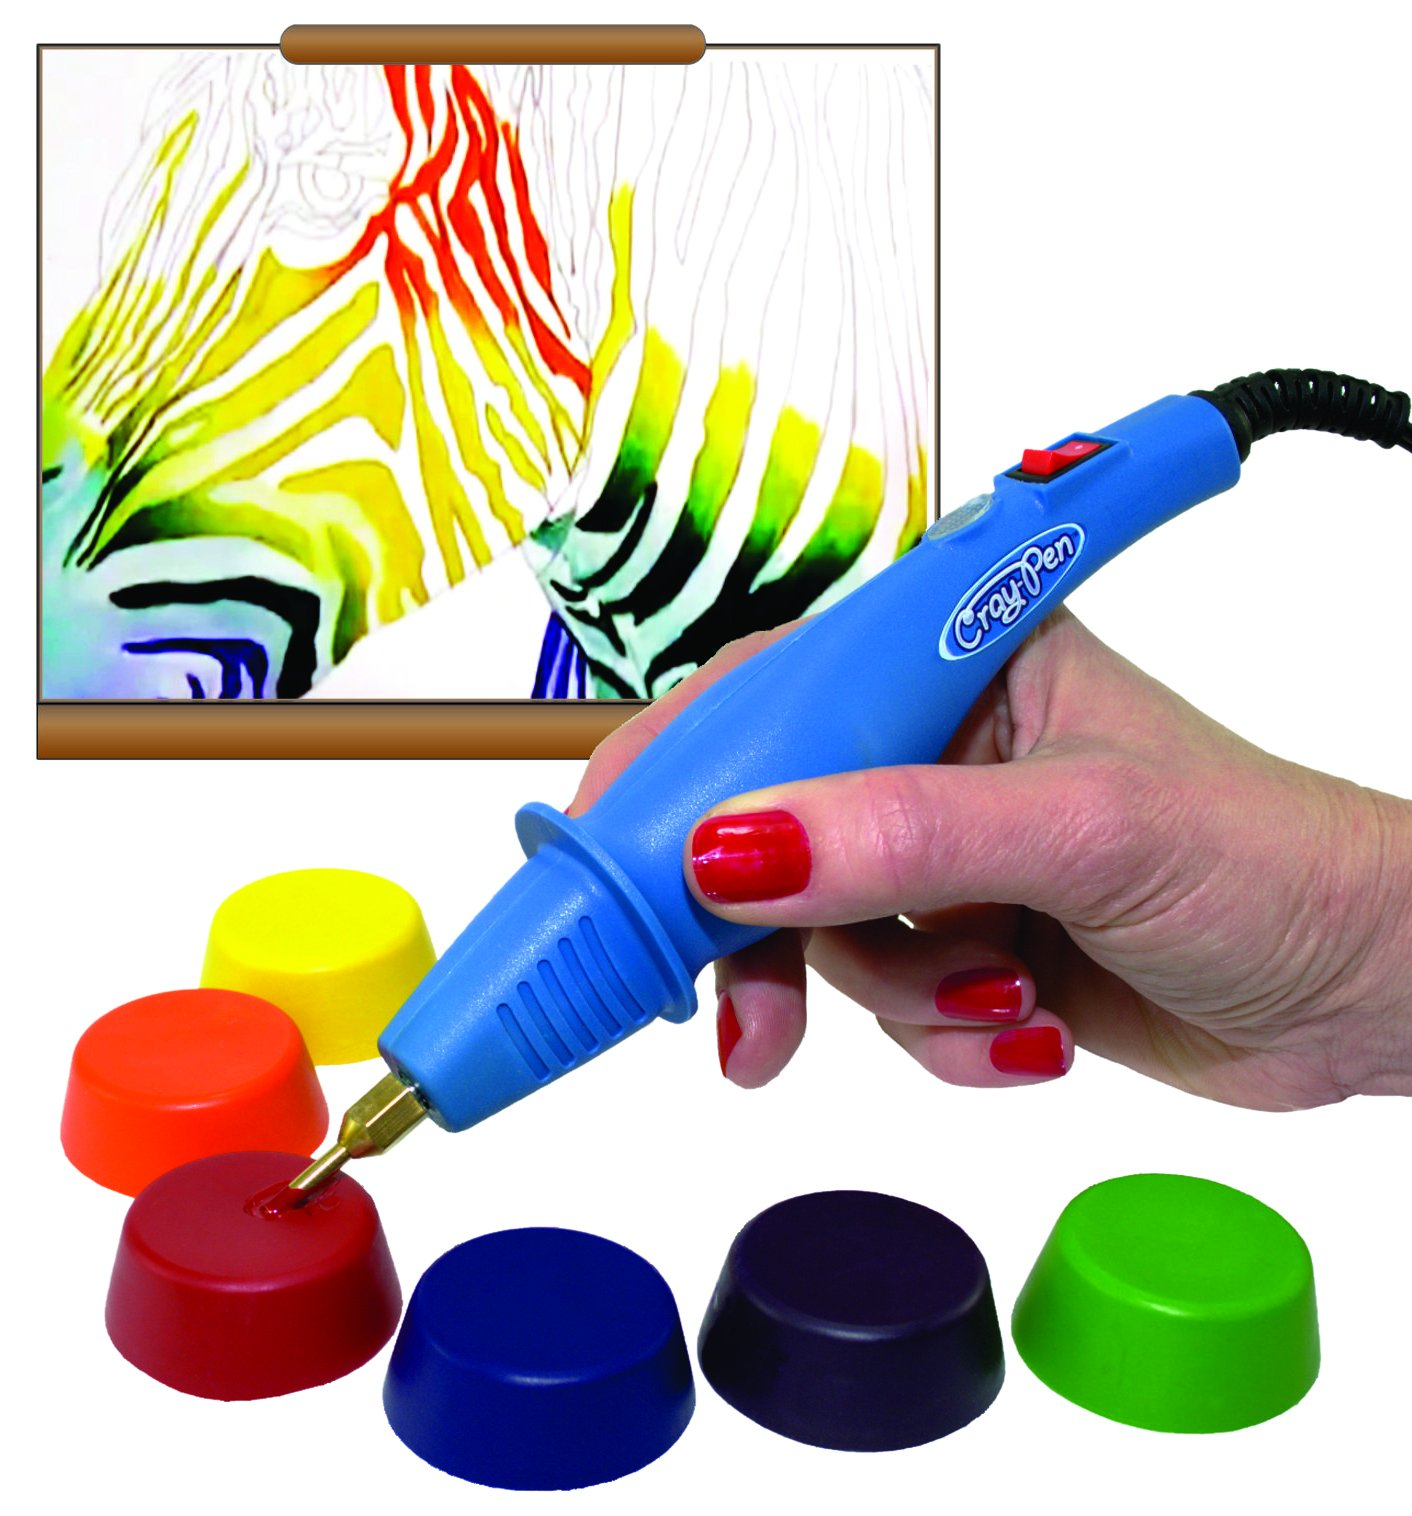 Surebonder CP-1AMKIT Cray-Pen Painting Set with 20 Variety Color Pucks and 2 Clean Out Pucks by Surebonder